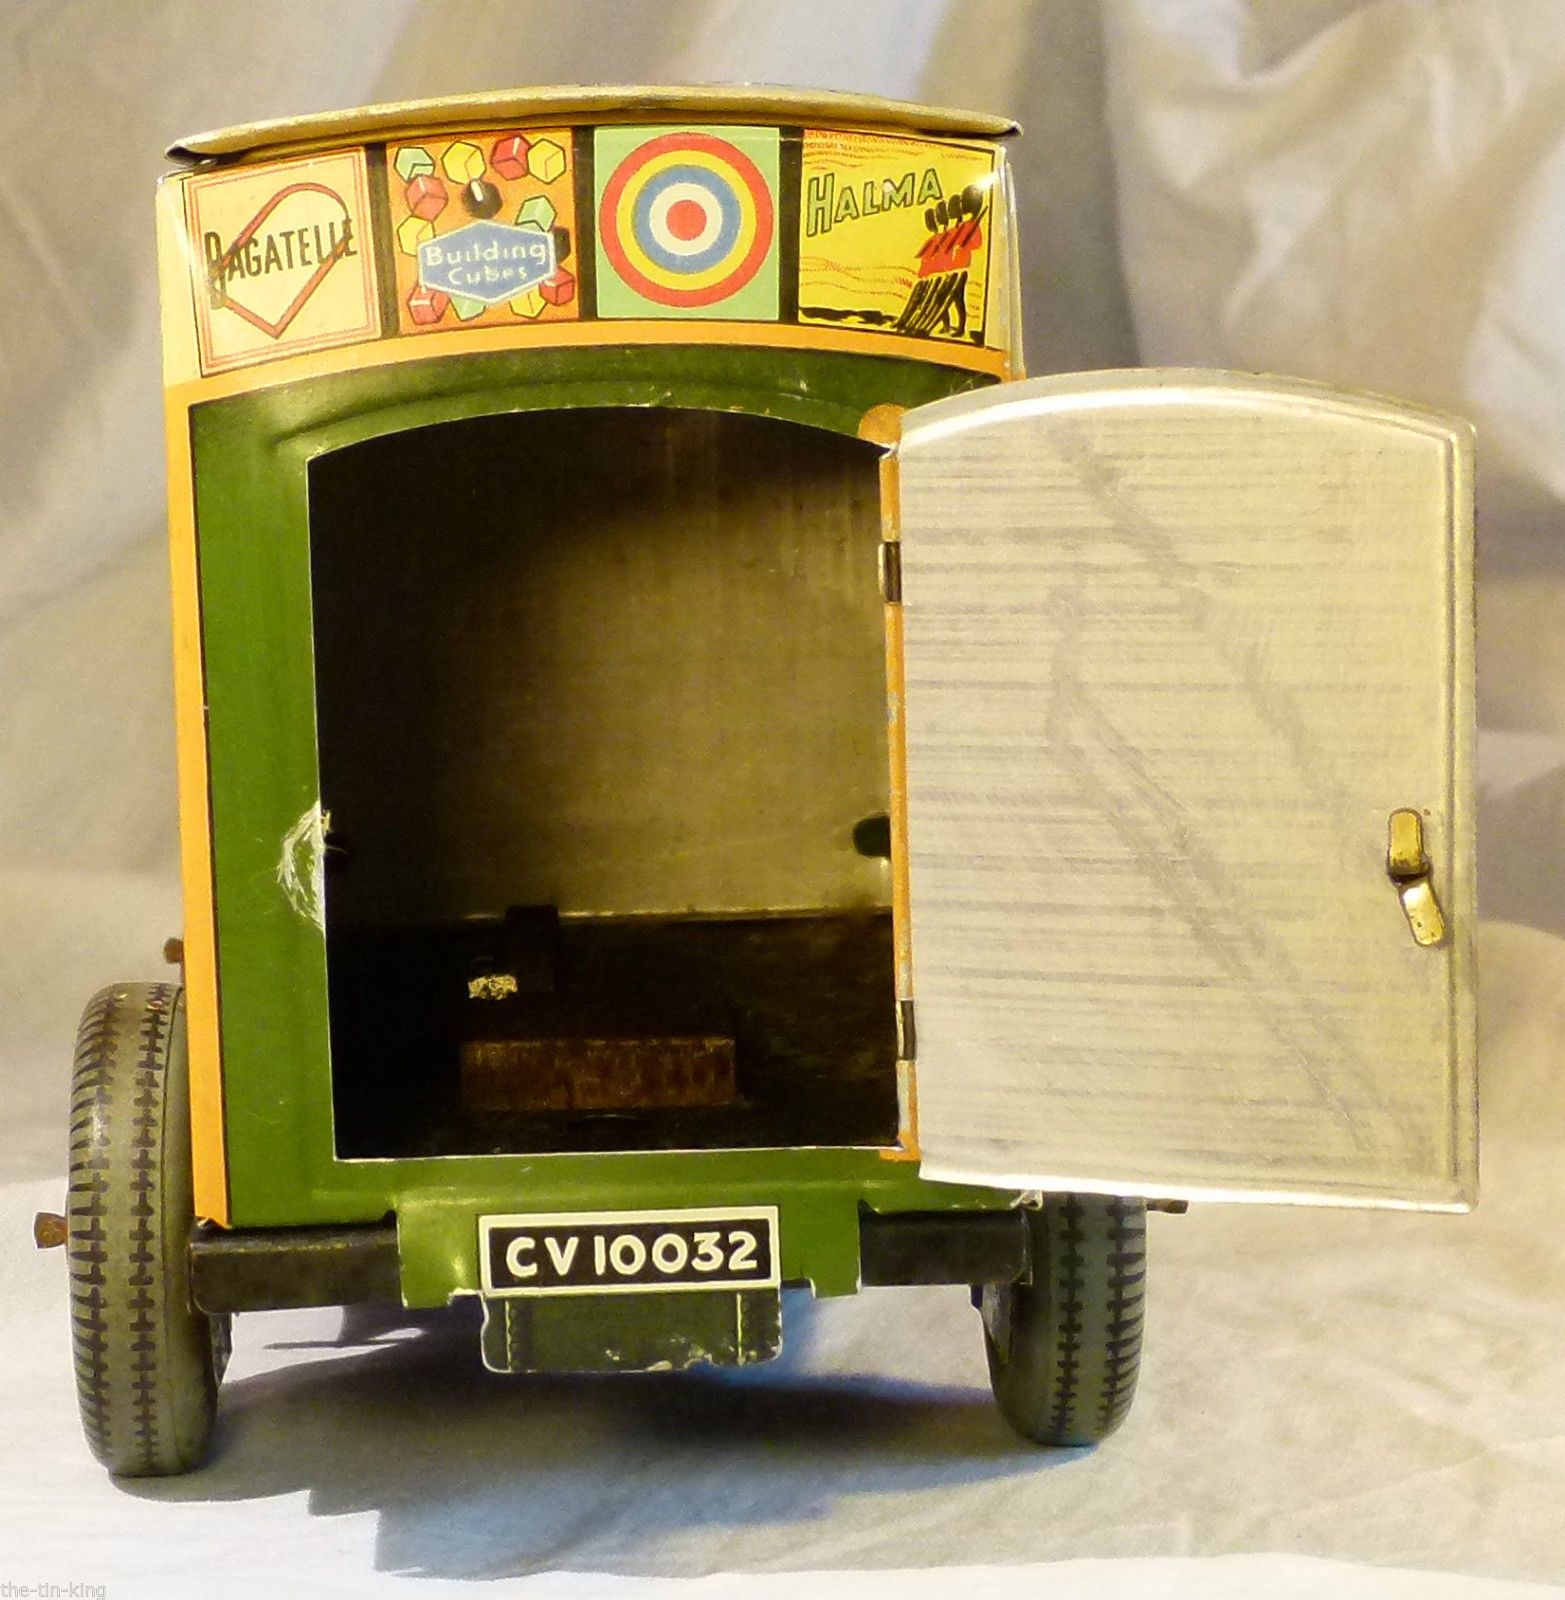 Superb Rare Antique Vintage TIN TOY Chad Valley Games Delivery VAN Biscuits TIN   eBay